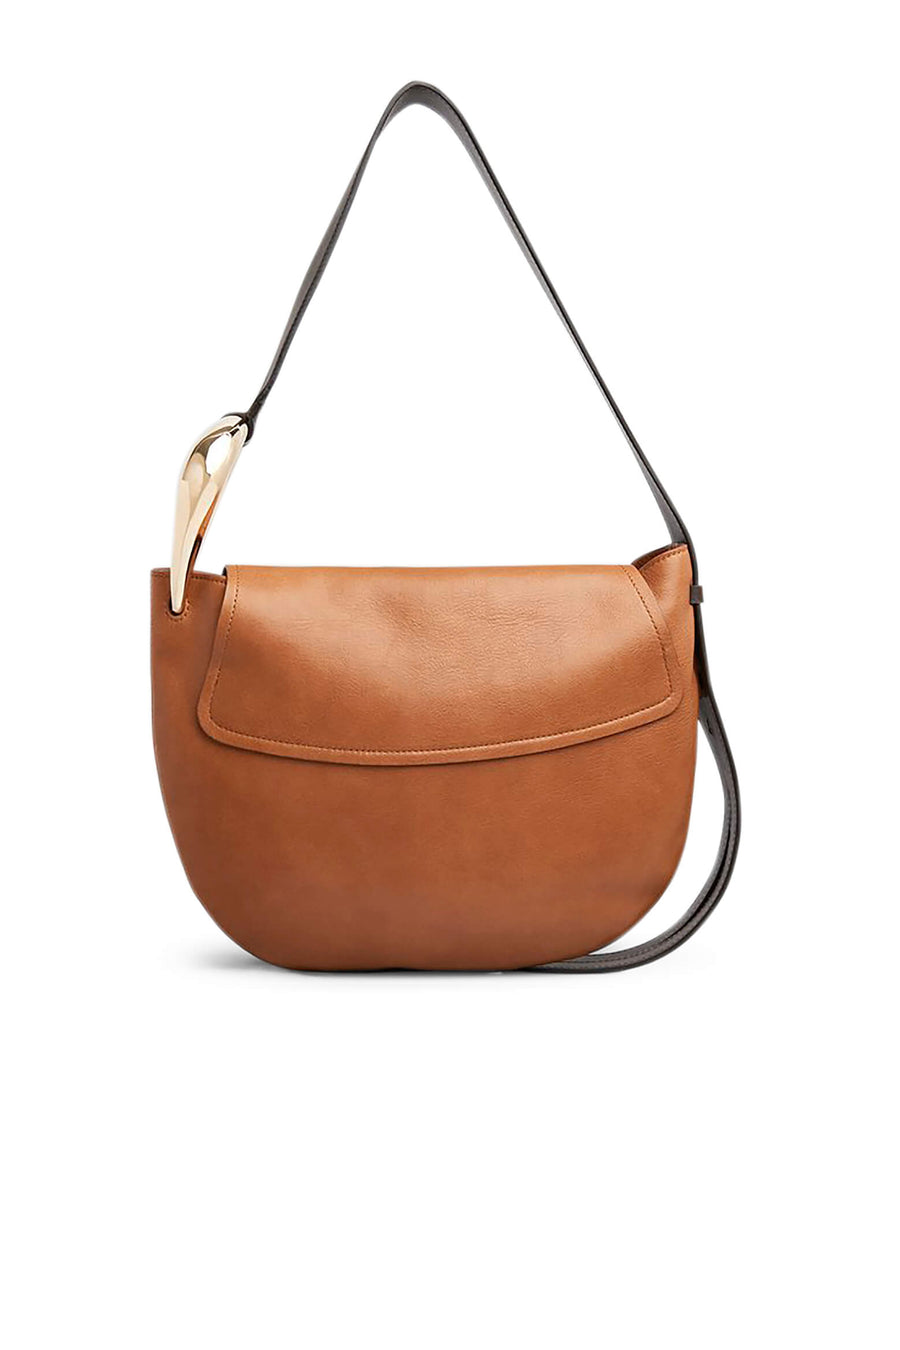 Chloe Kiss Hobo Bag in Arizona Brown from The New Trend